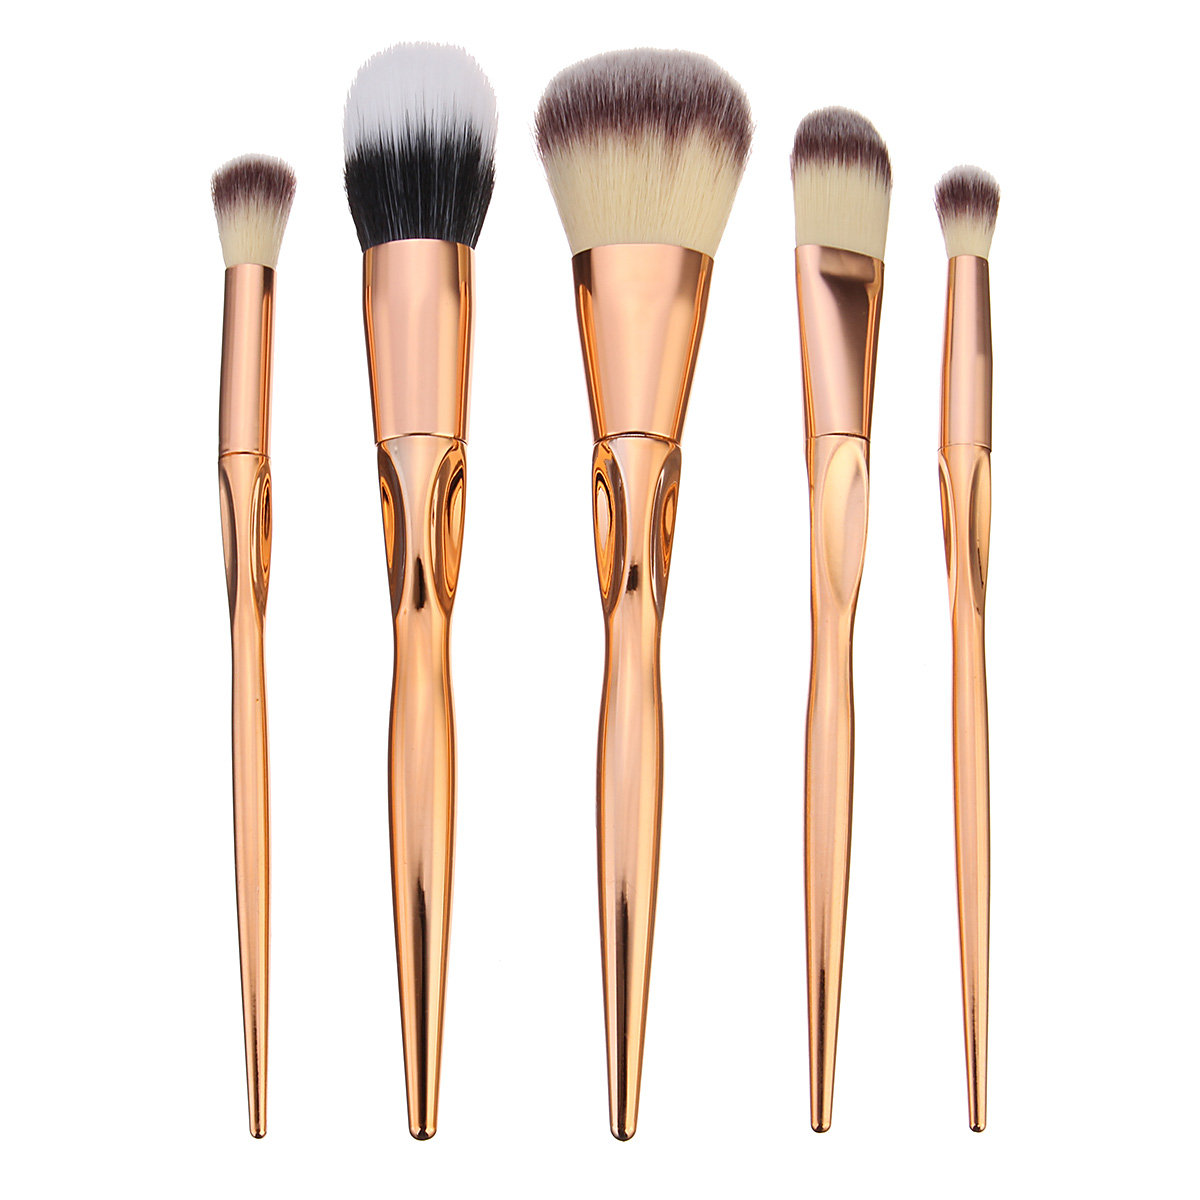 5Pcs Soft Makeup Brushes Kit Golden Cosmetics Tools Eye Shadow Lip Blending Blush Brush